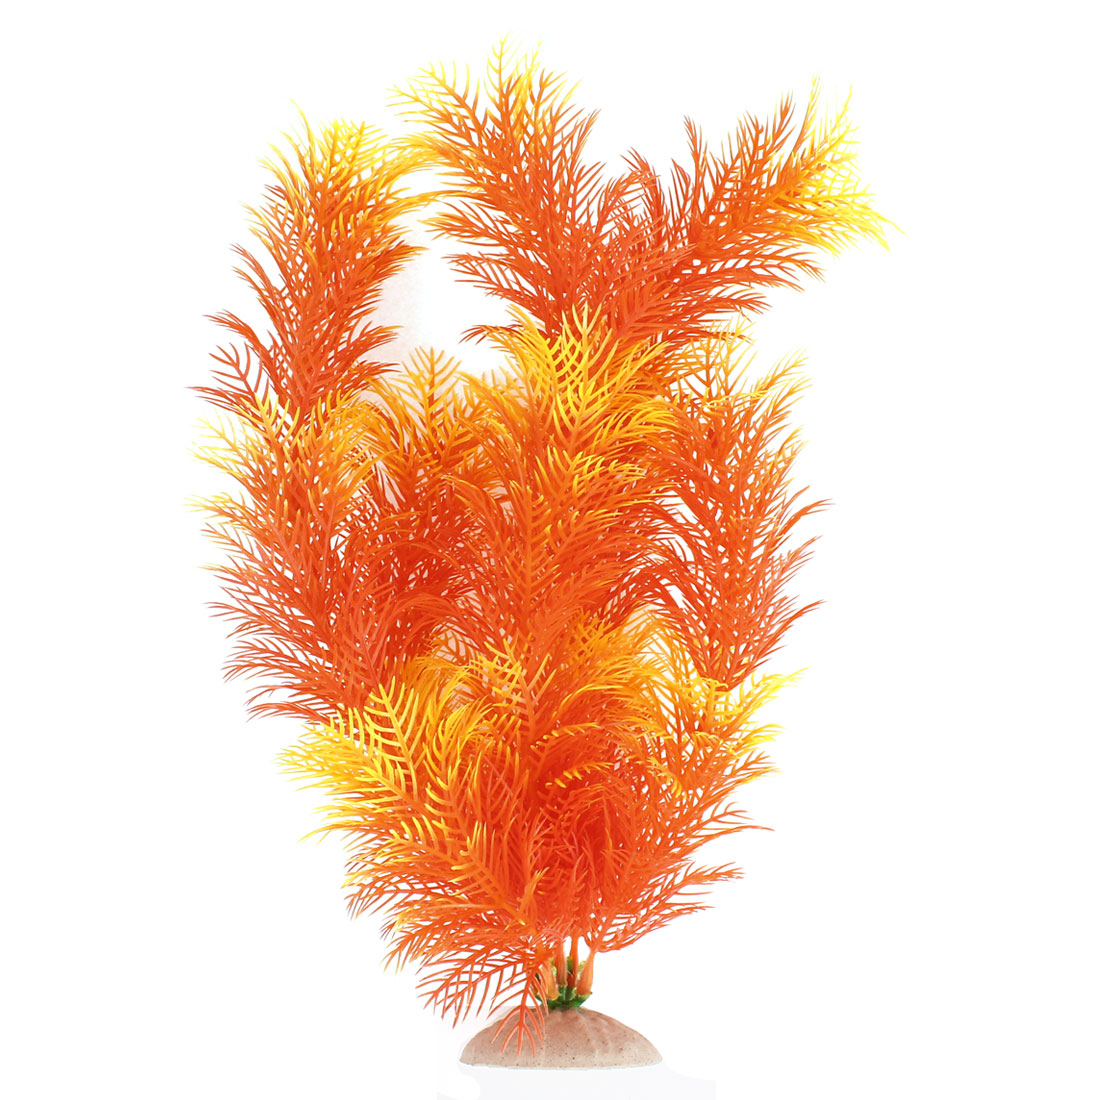 "Yellow Orange 12.2"" Height Fish Tank Plastic Simulation Aquatic Plant Ornament Decor"